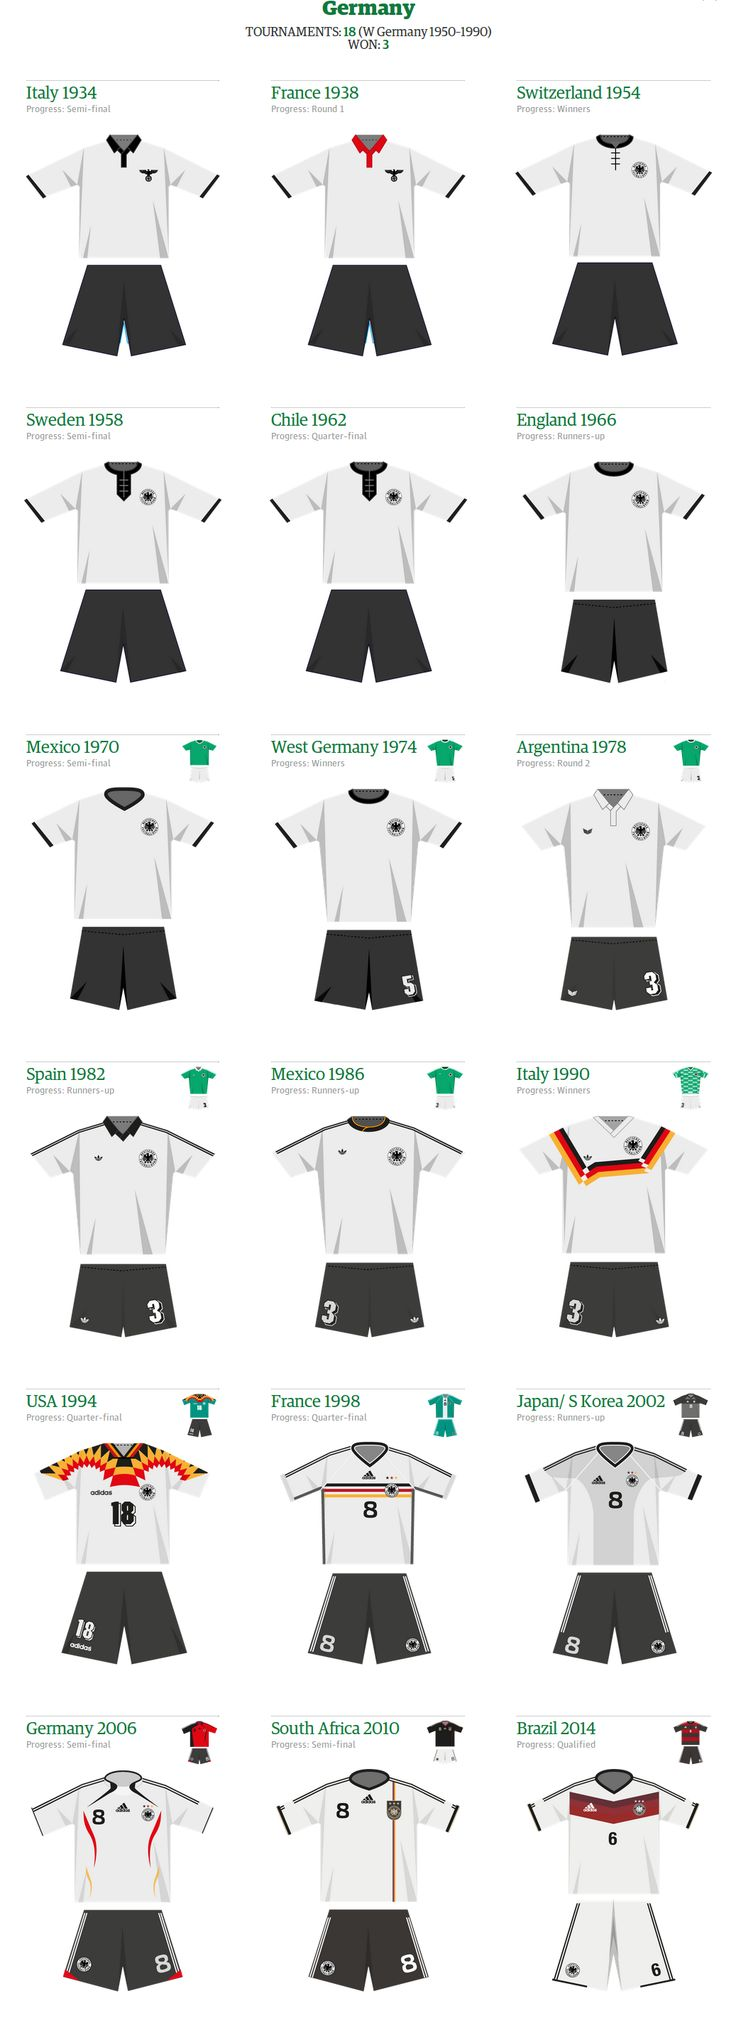 Germany's World Cup kits.